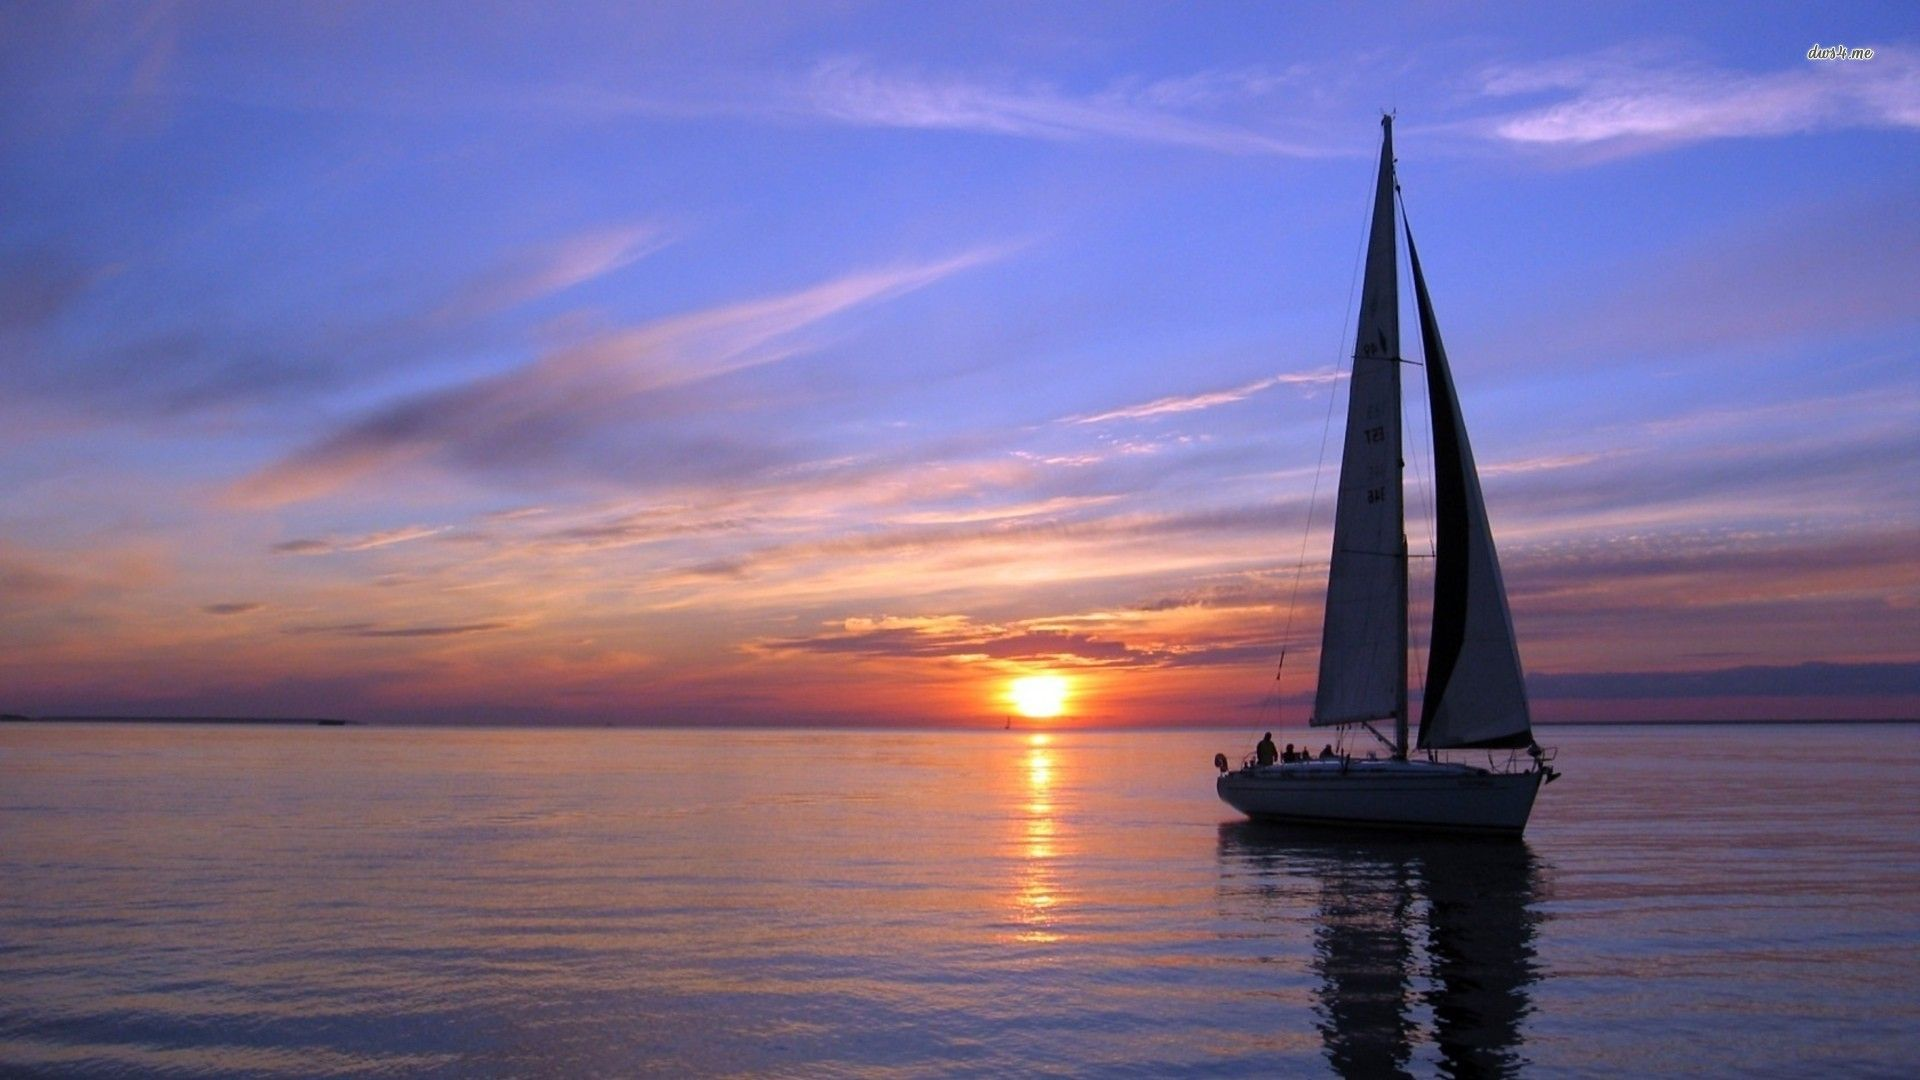 Free download Hd Sailboat Wallpapers Vehicles for Gt Sailboats